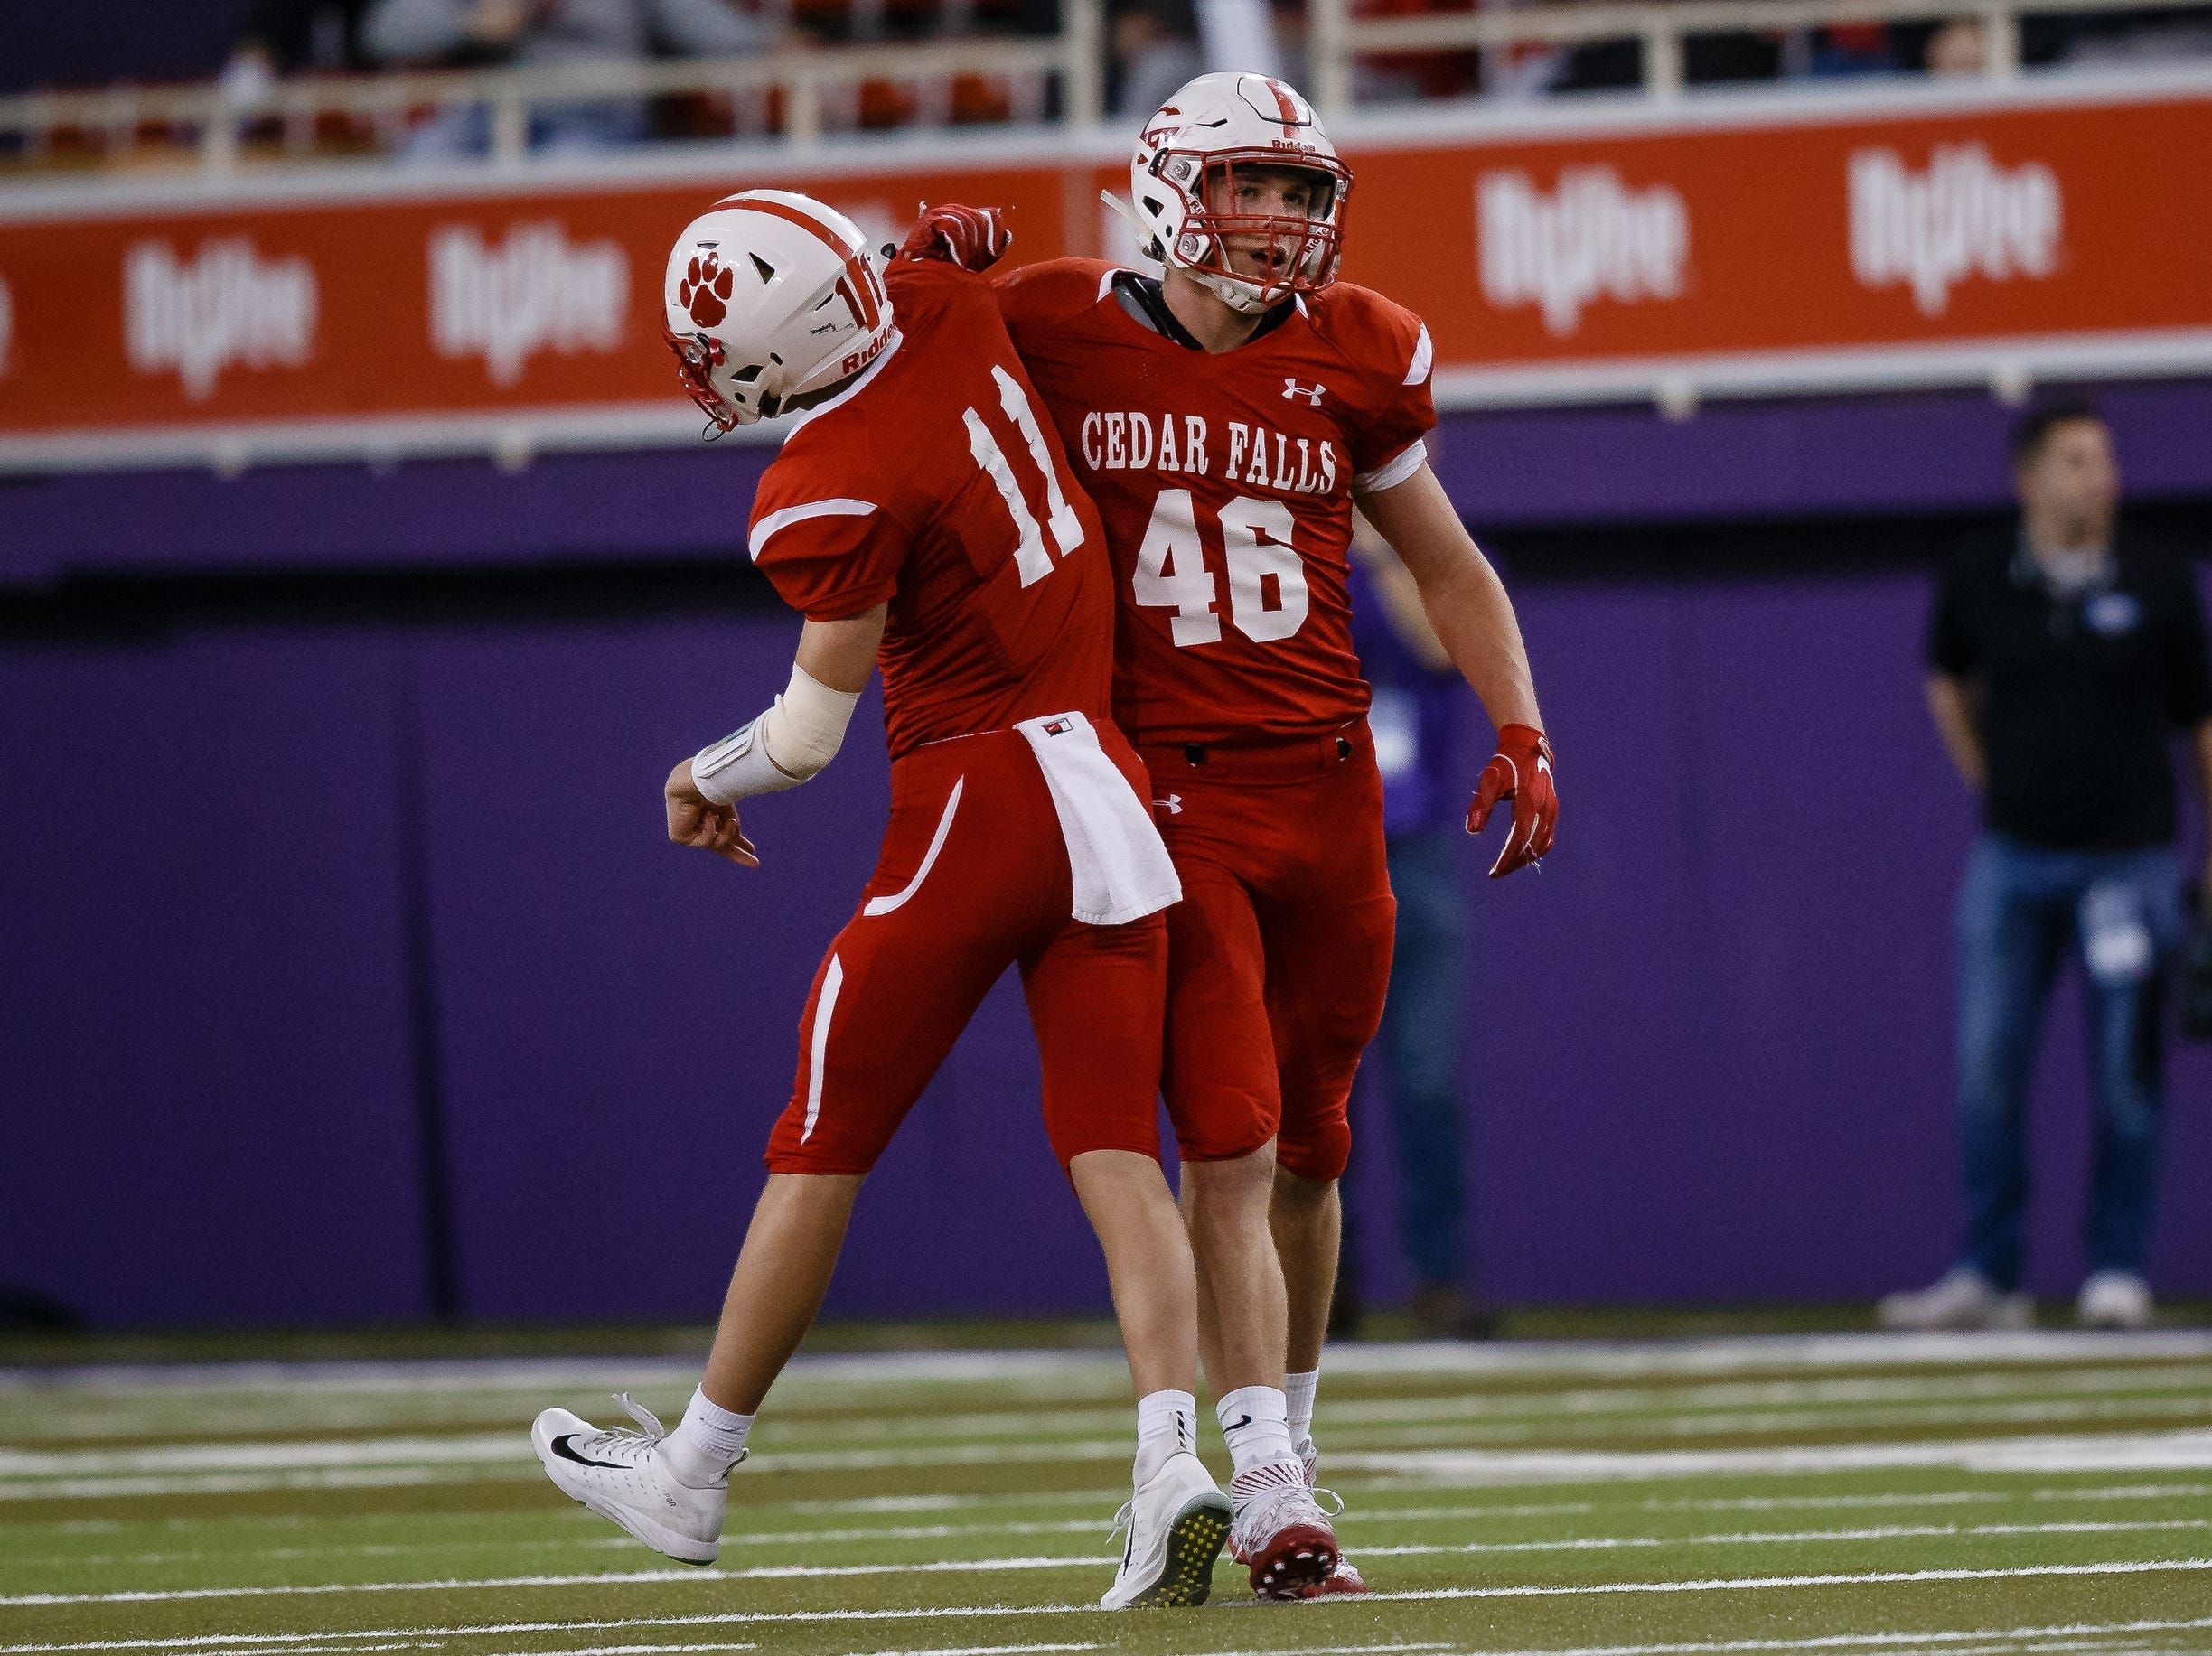 Cedar Falls's Jack Campbell (46) celebrates a bit hit with Cedar Falls's Ben Sernett (11) during their class 4A state championship football game on Friday, Nov. 16, 2018, in Cedar Falls. Cedar Falls takes a 13-7 lead into halftime.